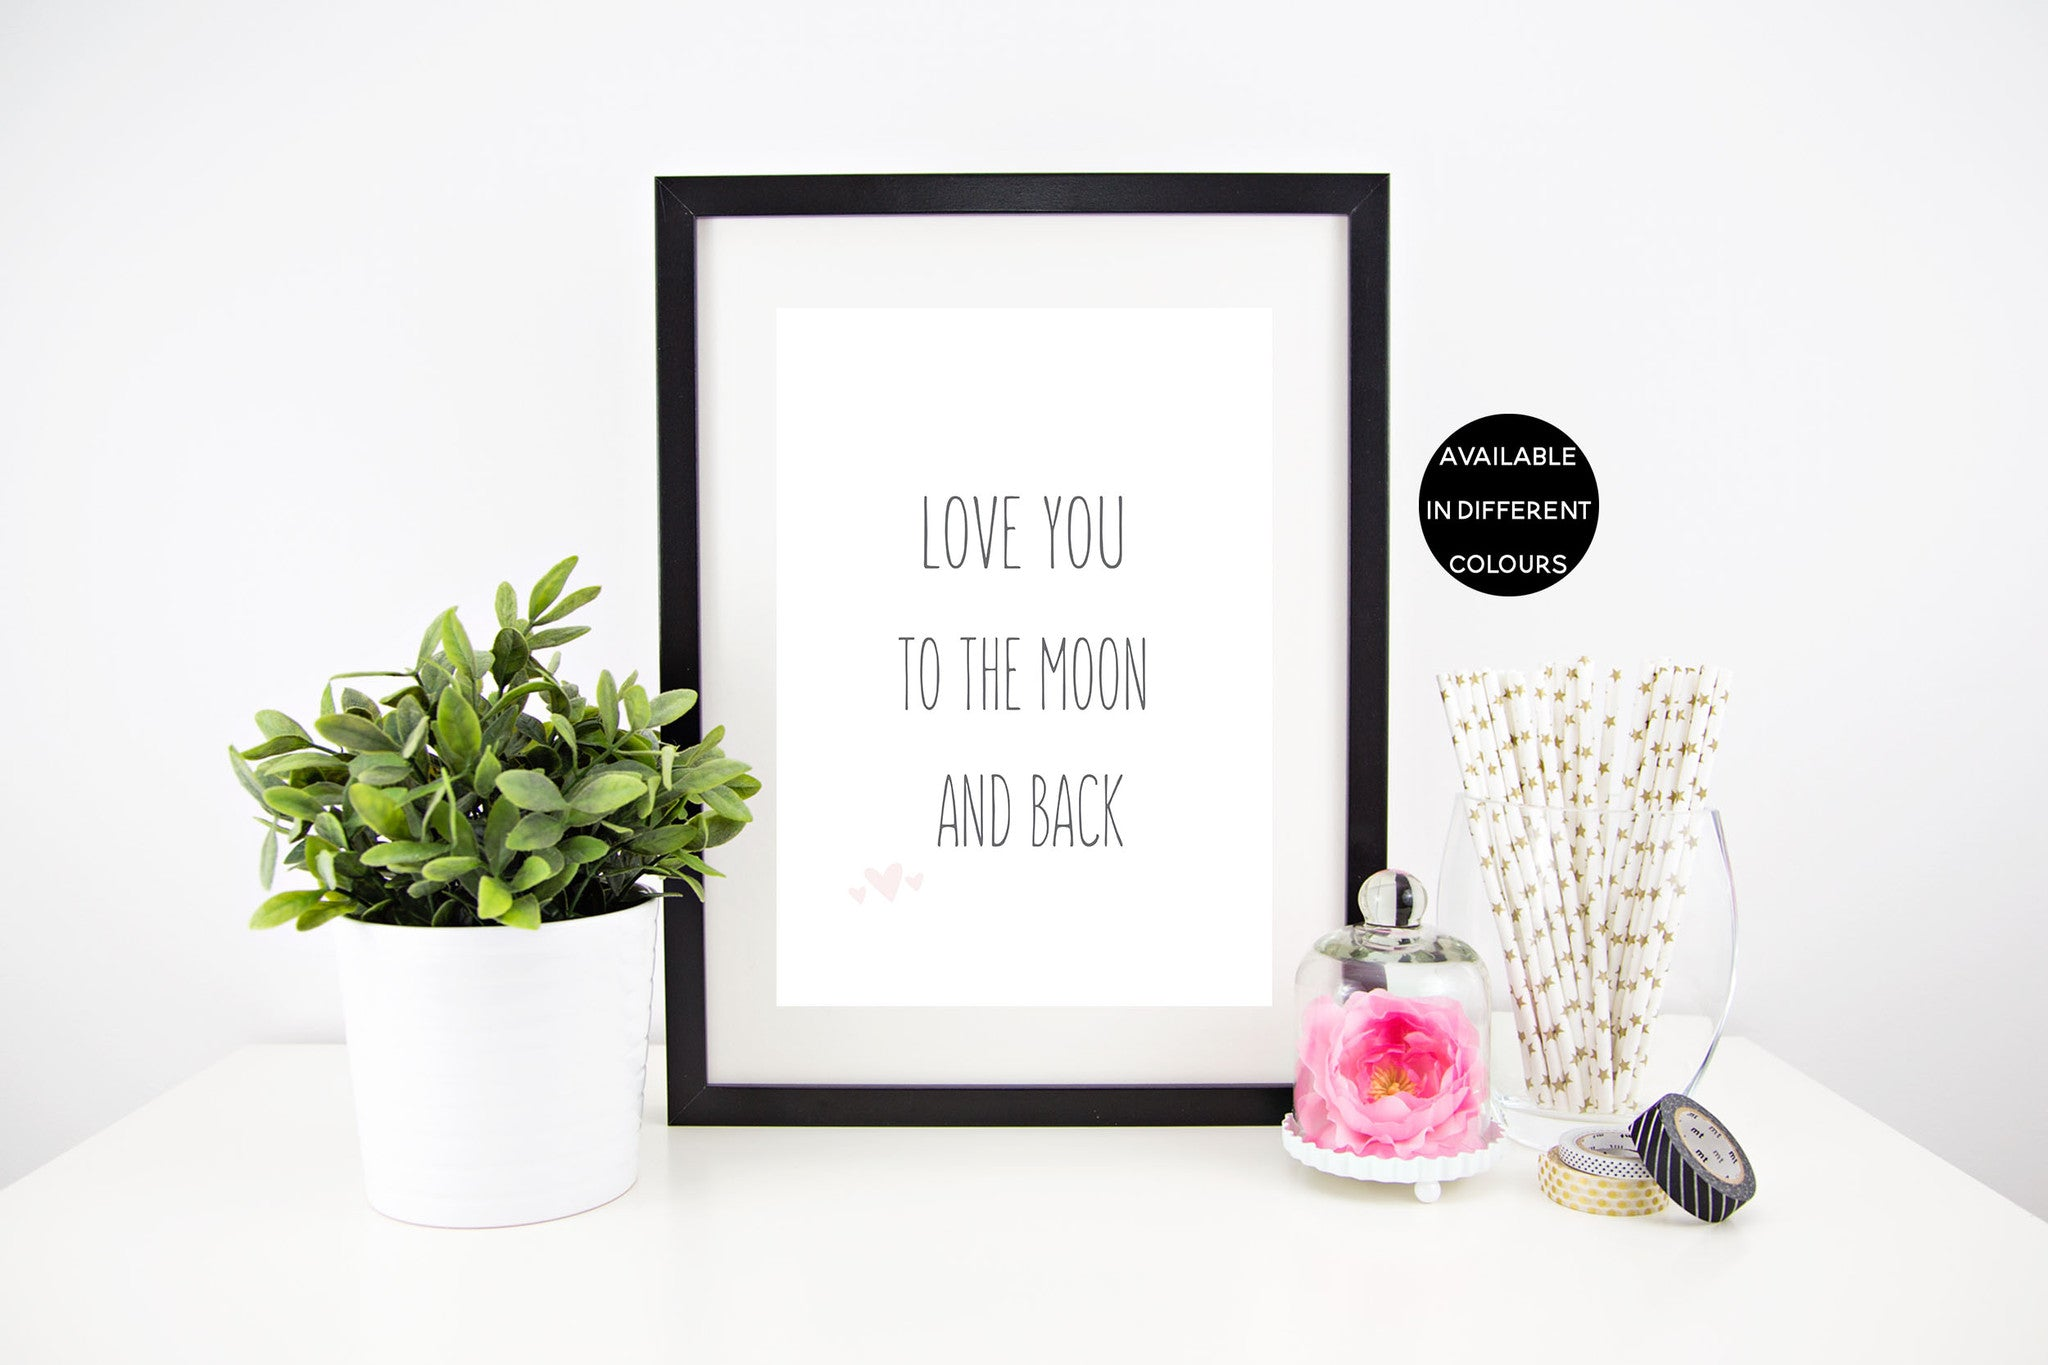 Love You To The Moon Wall Print - Stylish Baby Milestone Cards + Baby Announcement Baby Wraps + swaddles. Global Shipping lovepaperink.com.au